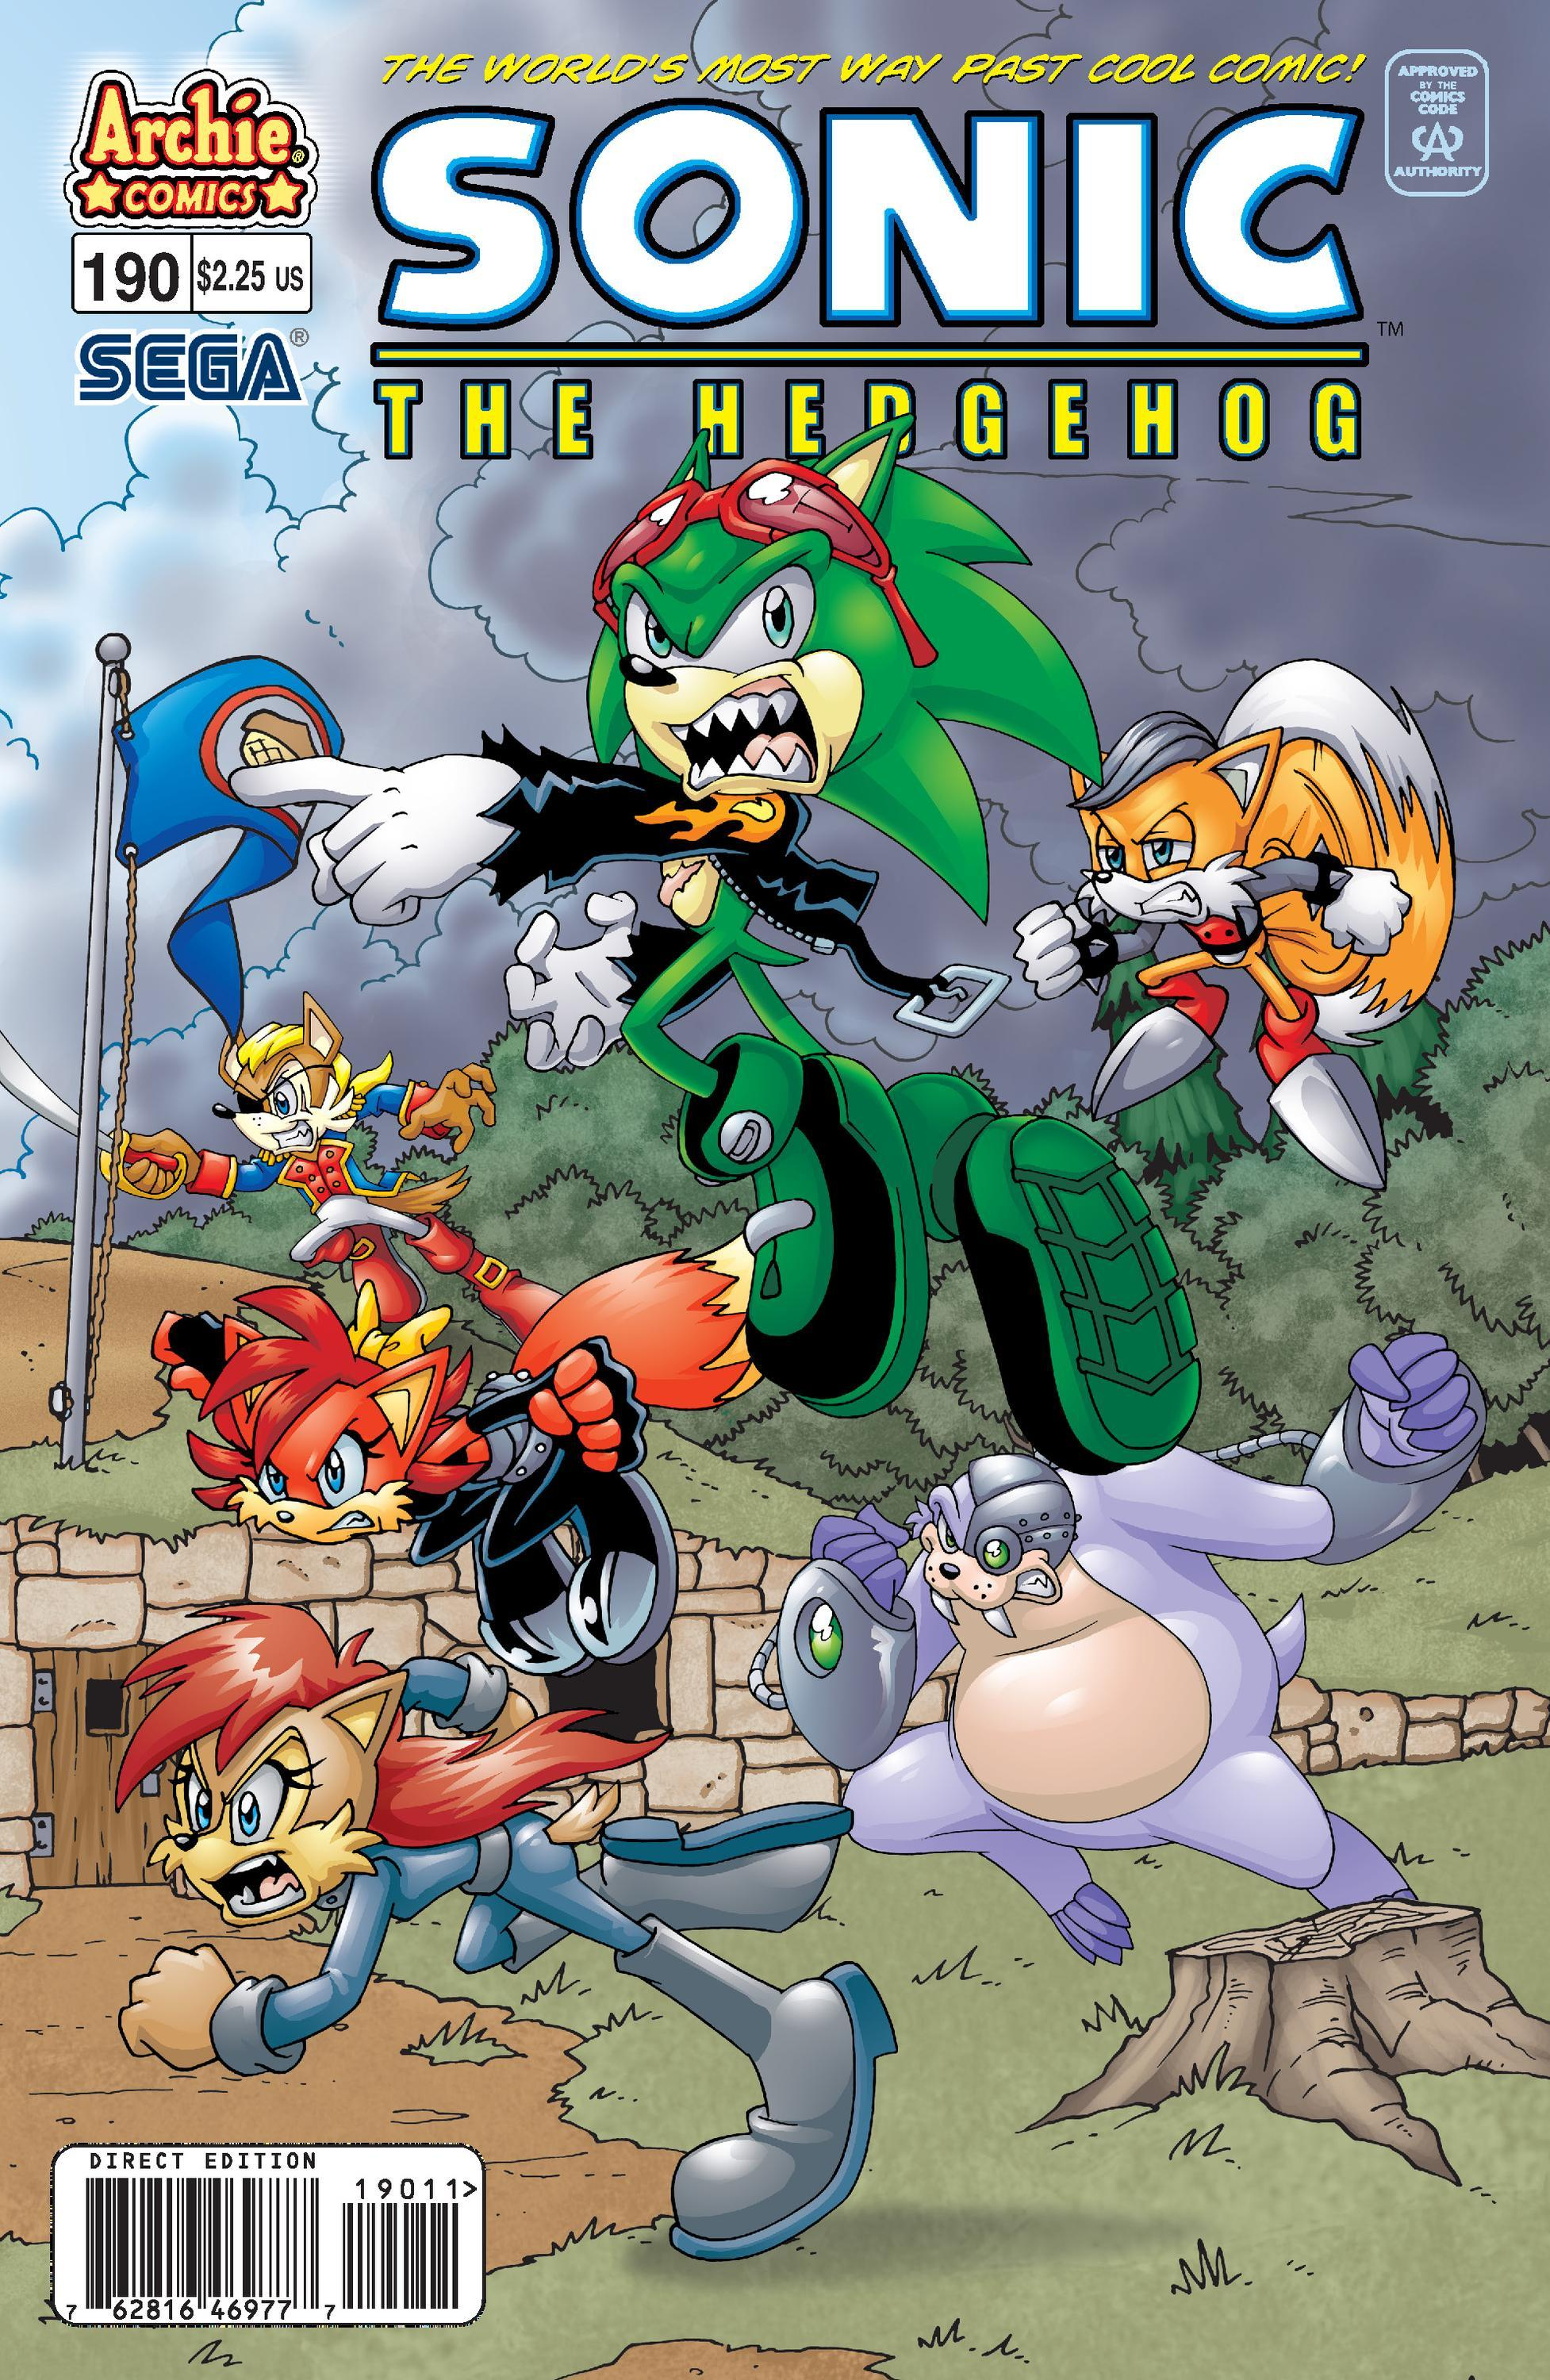 Archie Sonic the Hedgehog Issue 190